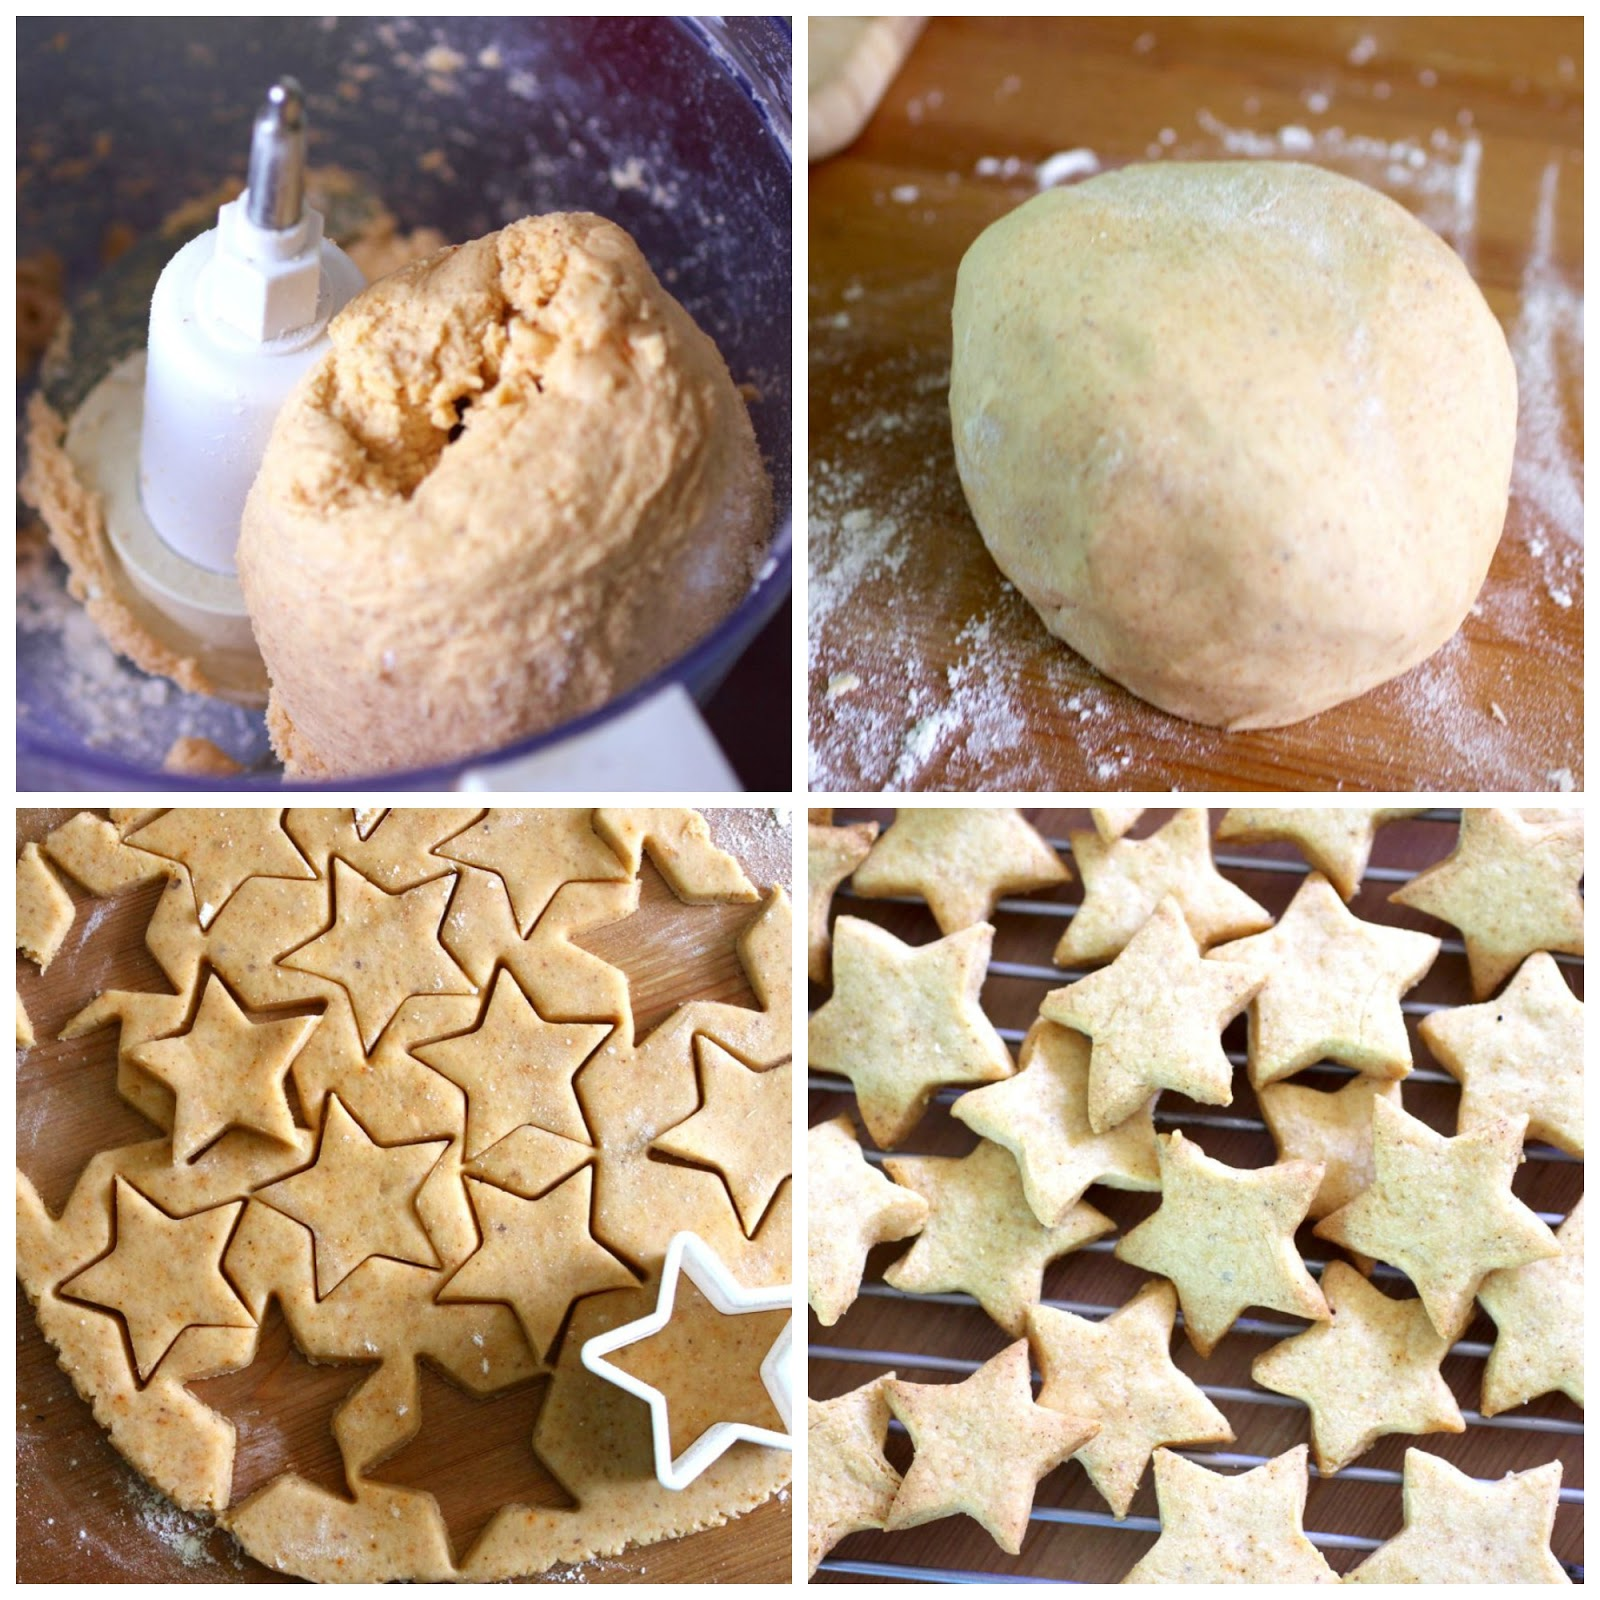 Green Gourmet Giraffe: Cheese and walnut biscuits for Christmas gifts